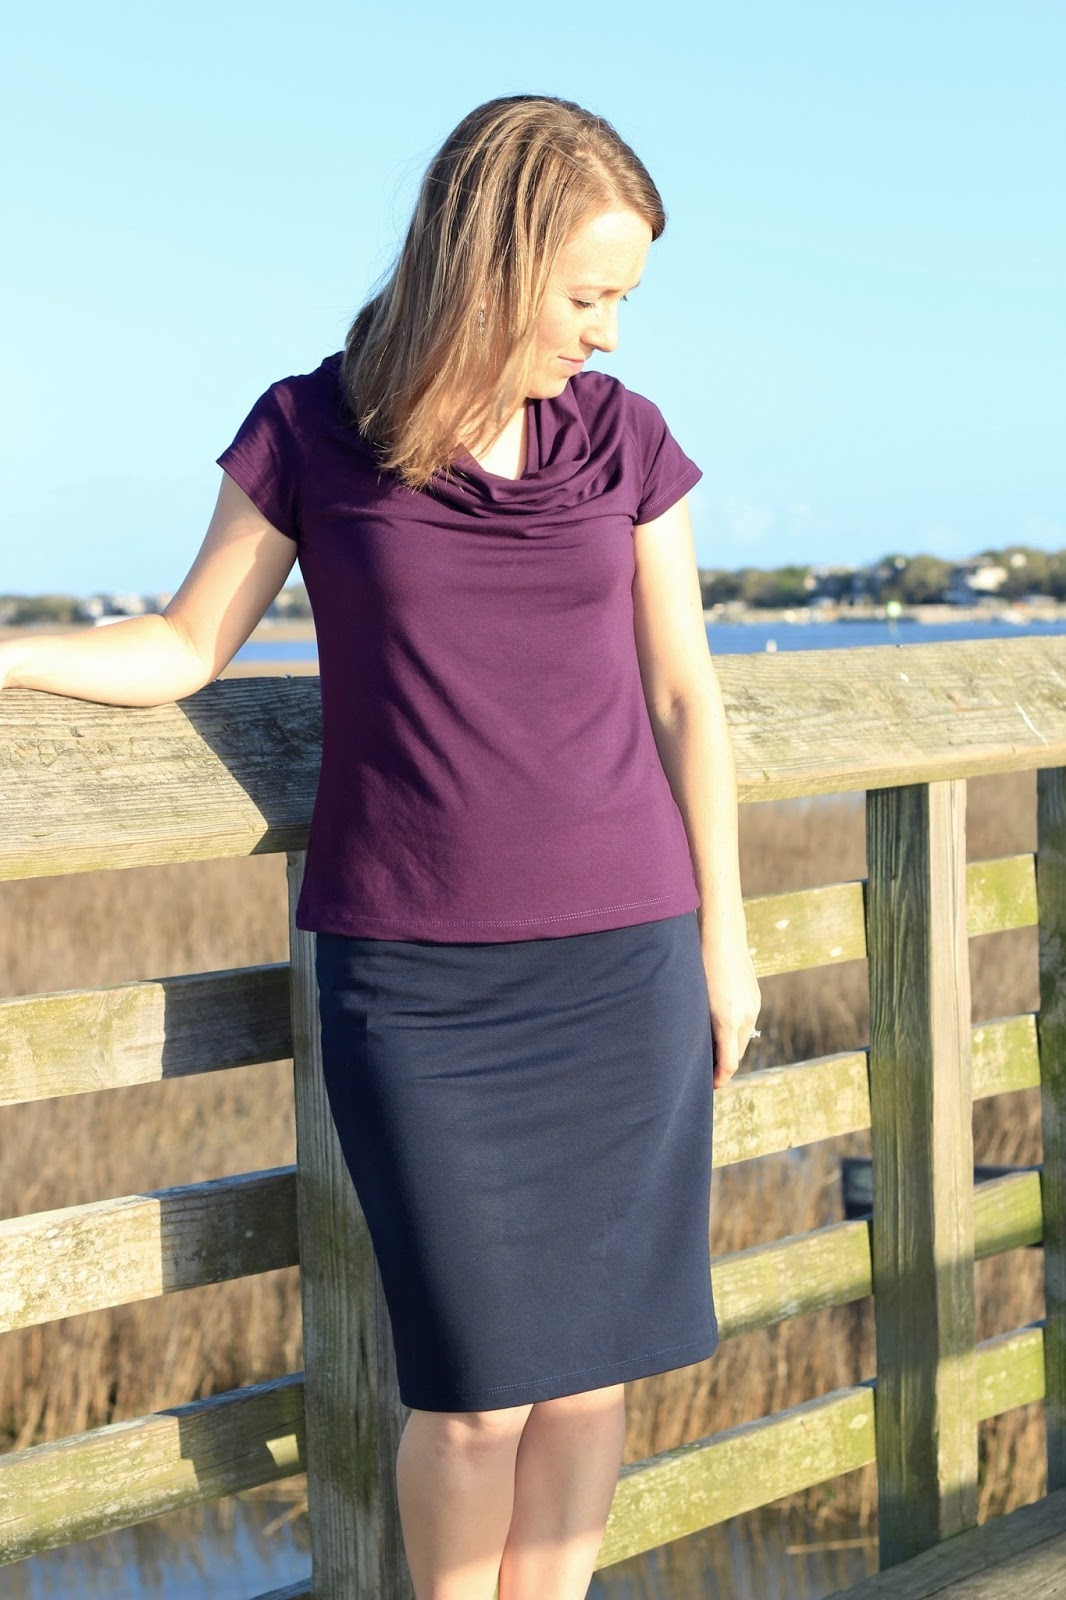 Pirate Pencil Skirt ~ Patterns for Pirates - The Petite Sewist